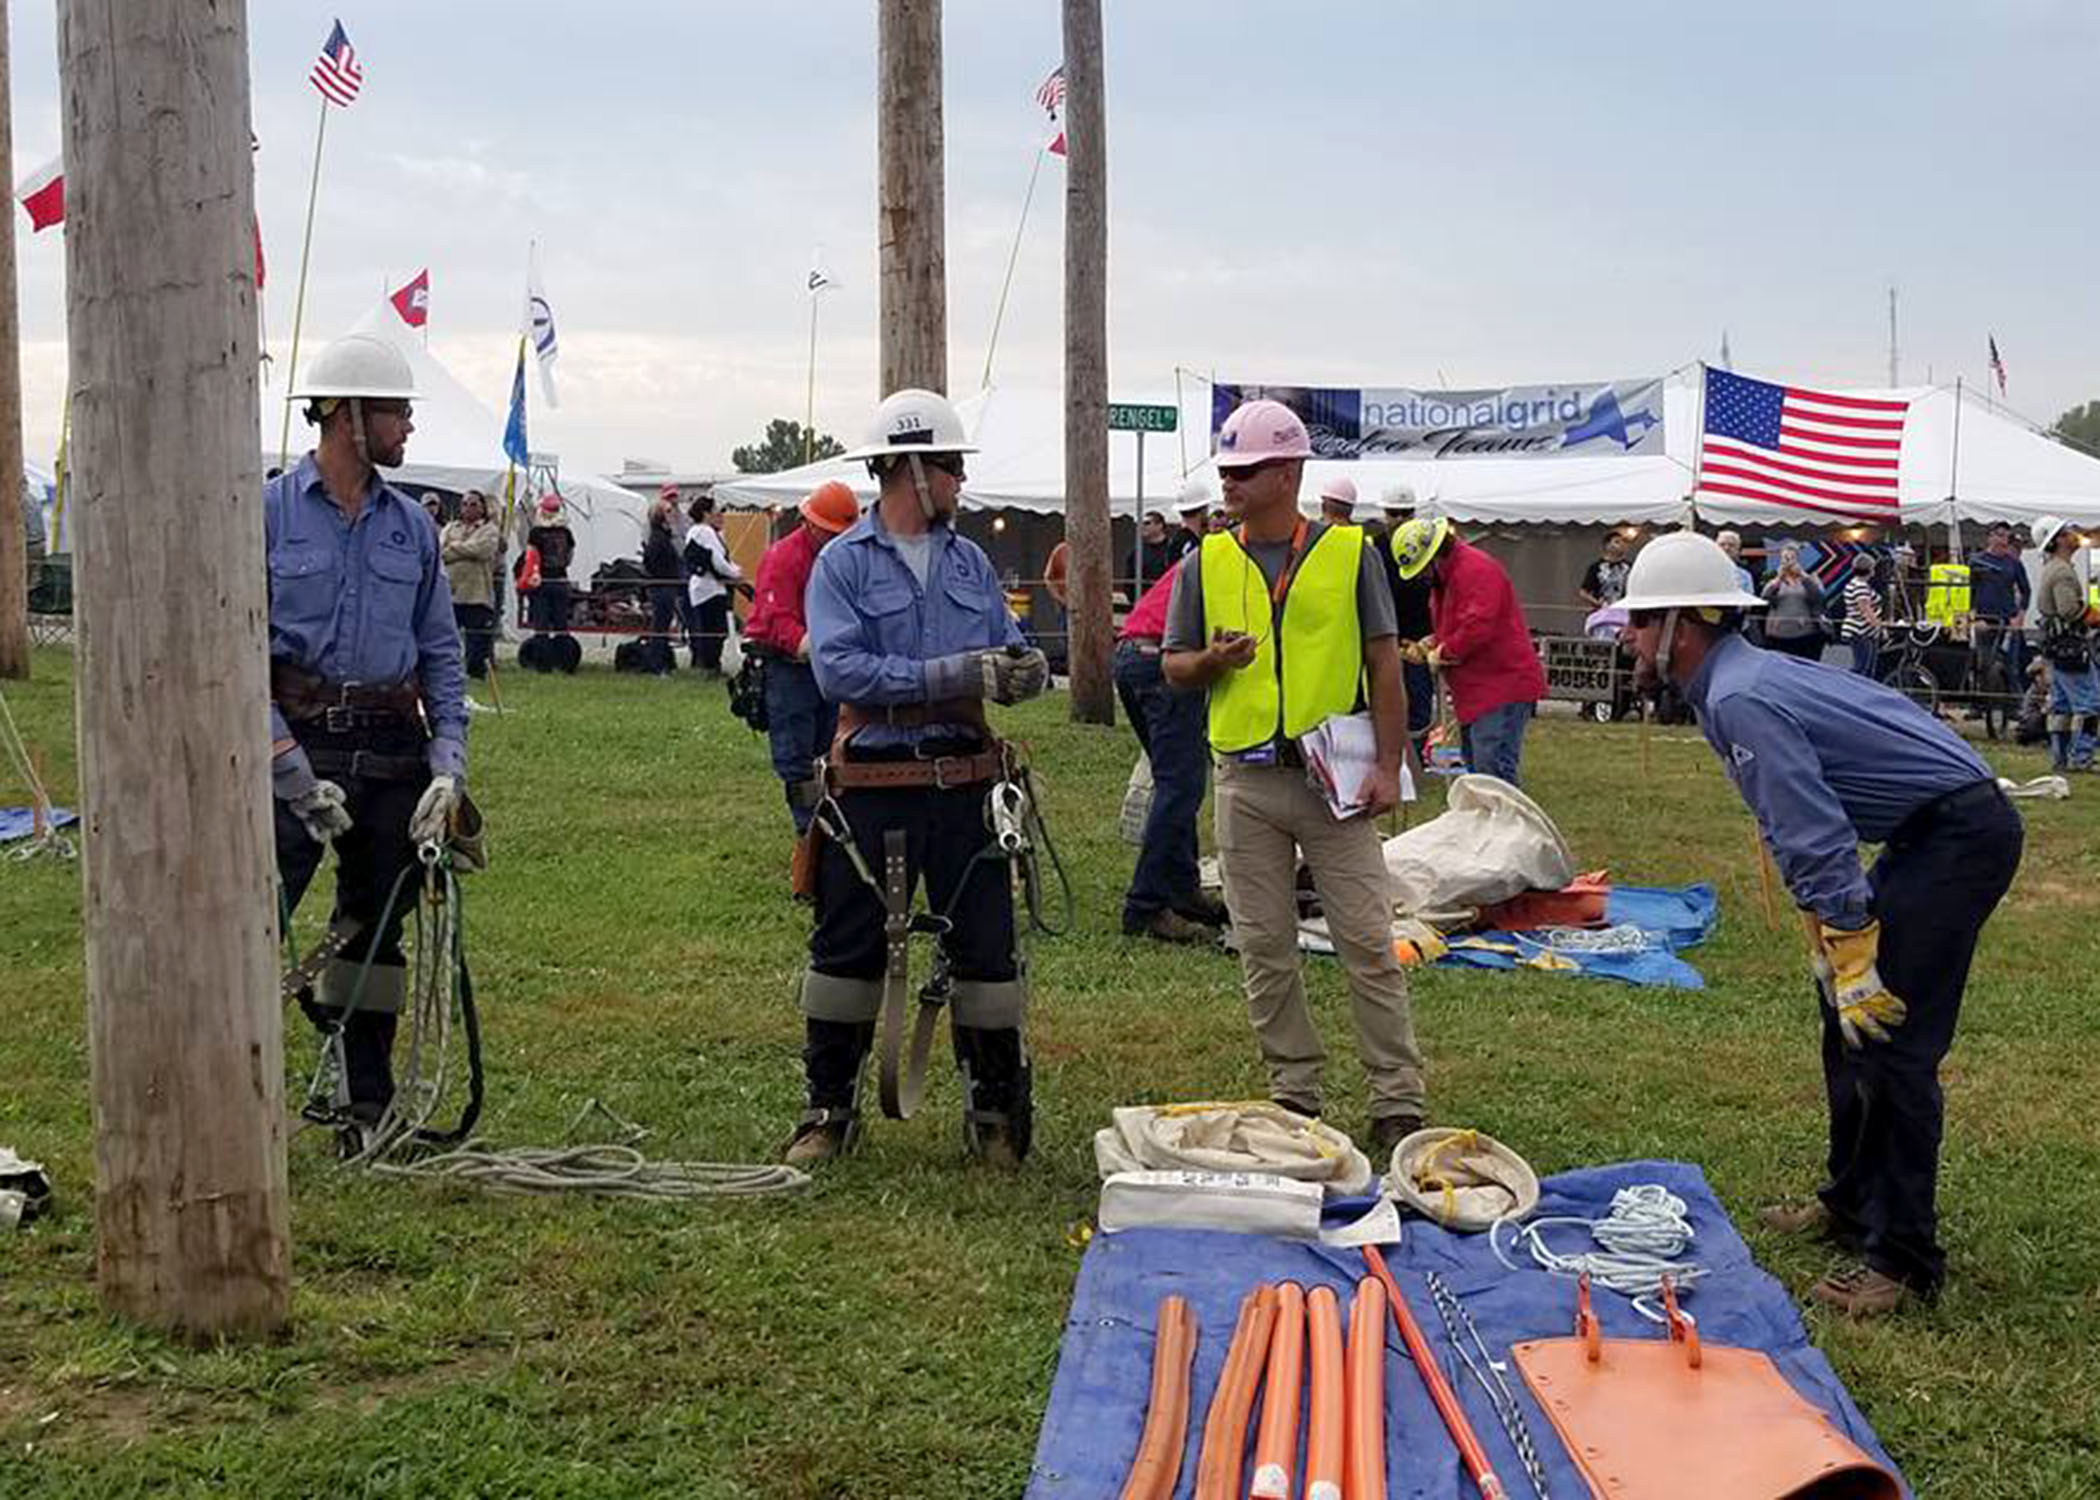 A photo of Midwest Energy's Hays Journeyman team, of Shawn Slaubaugh, Butch Hamel and Brian Legleiter, discusses an upcoming event with a judge at the International Lineman's Rodeo in Bonner Springs, Oct. 14.